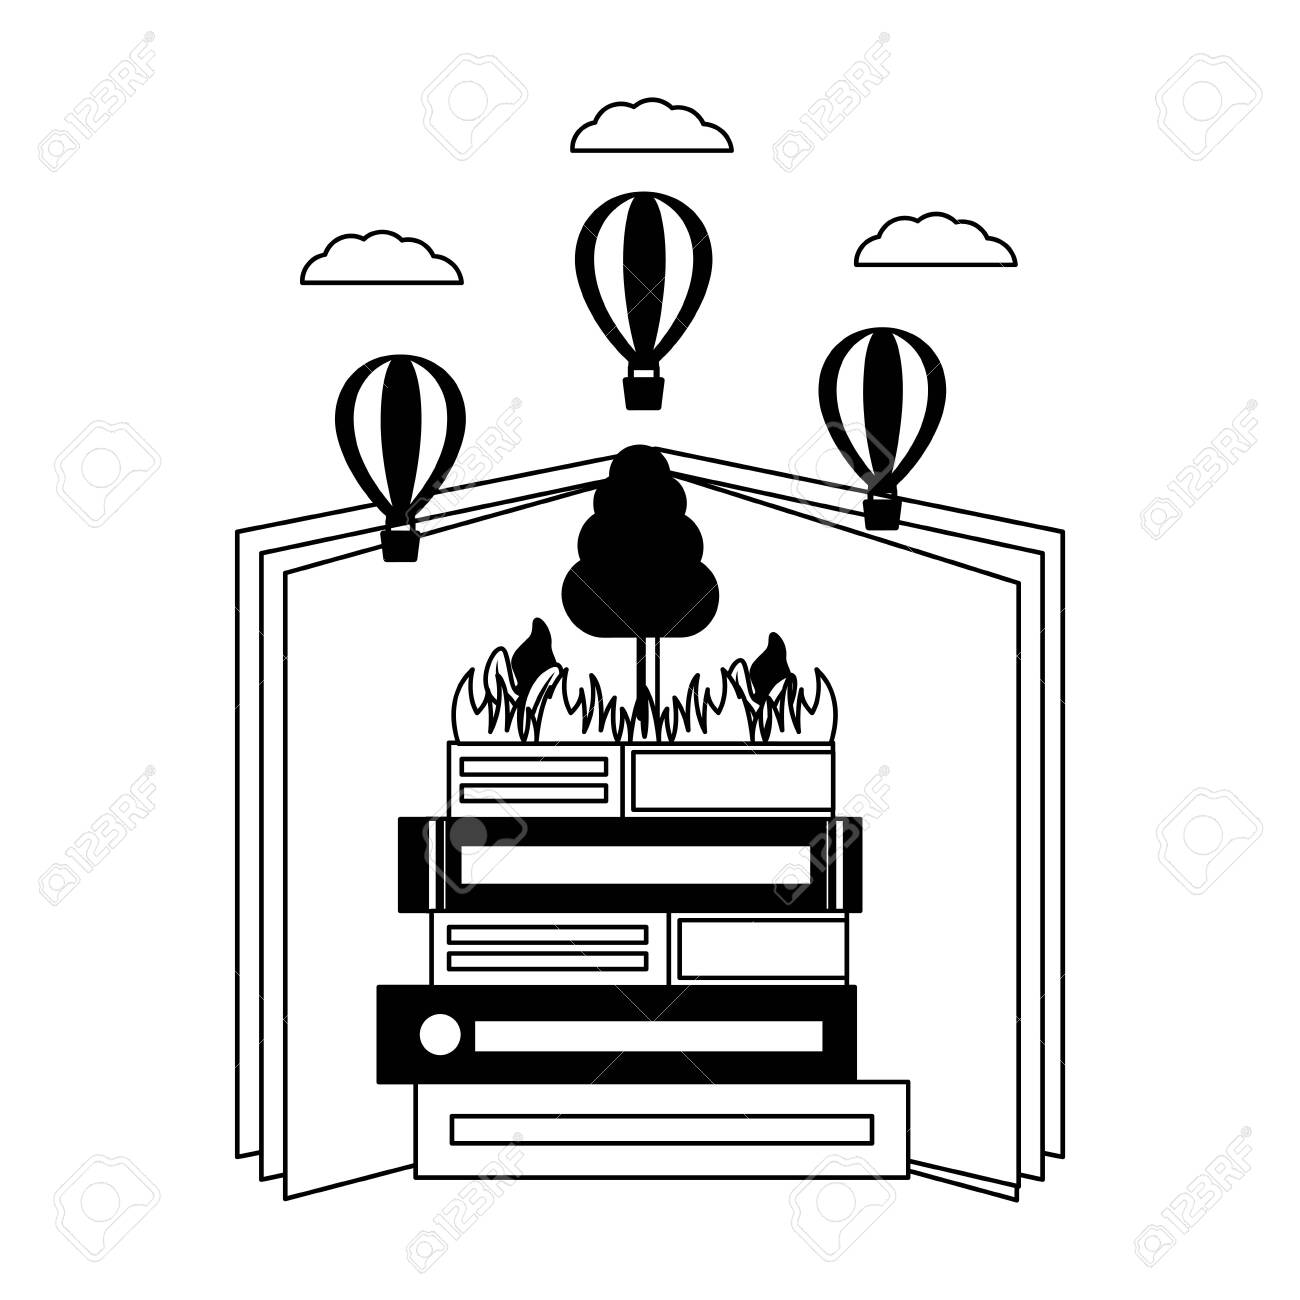 world book day literature learn know vector illustration - 124267893